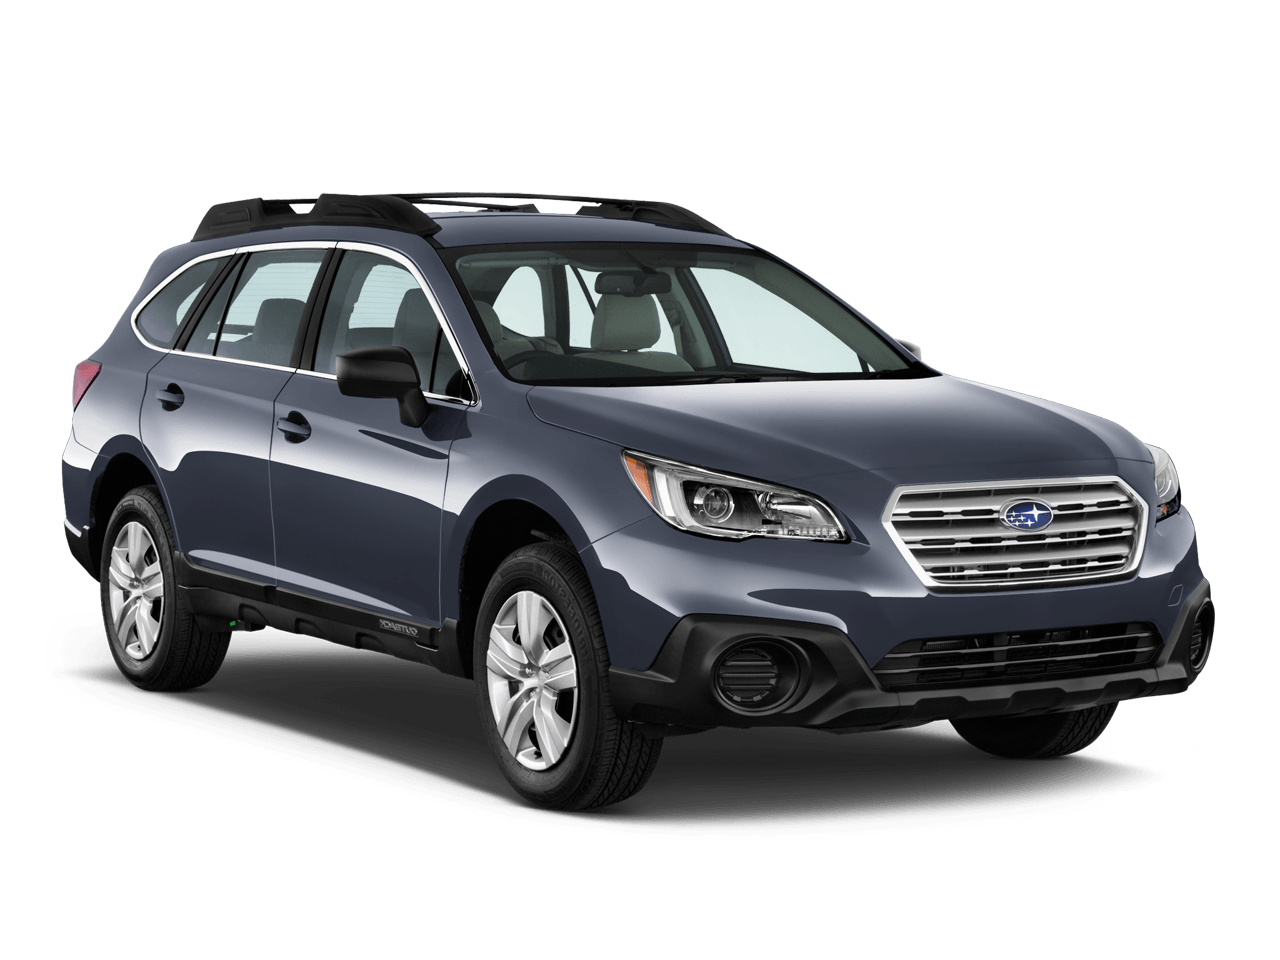 New Subaru Outback at Quirk Works Subaru